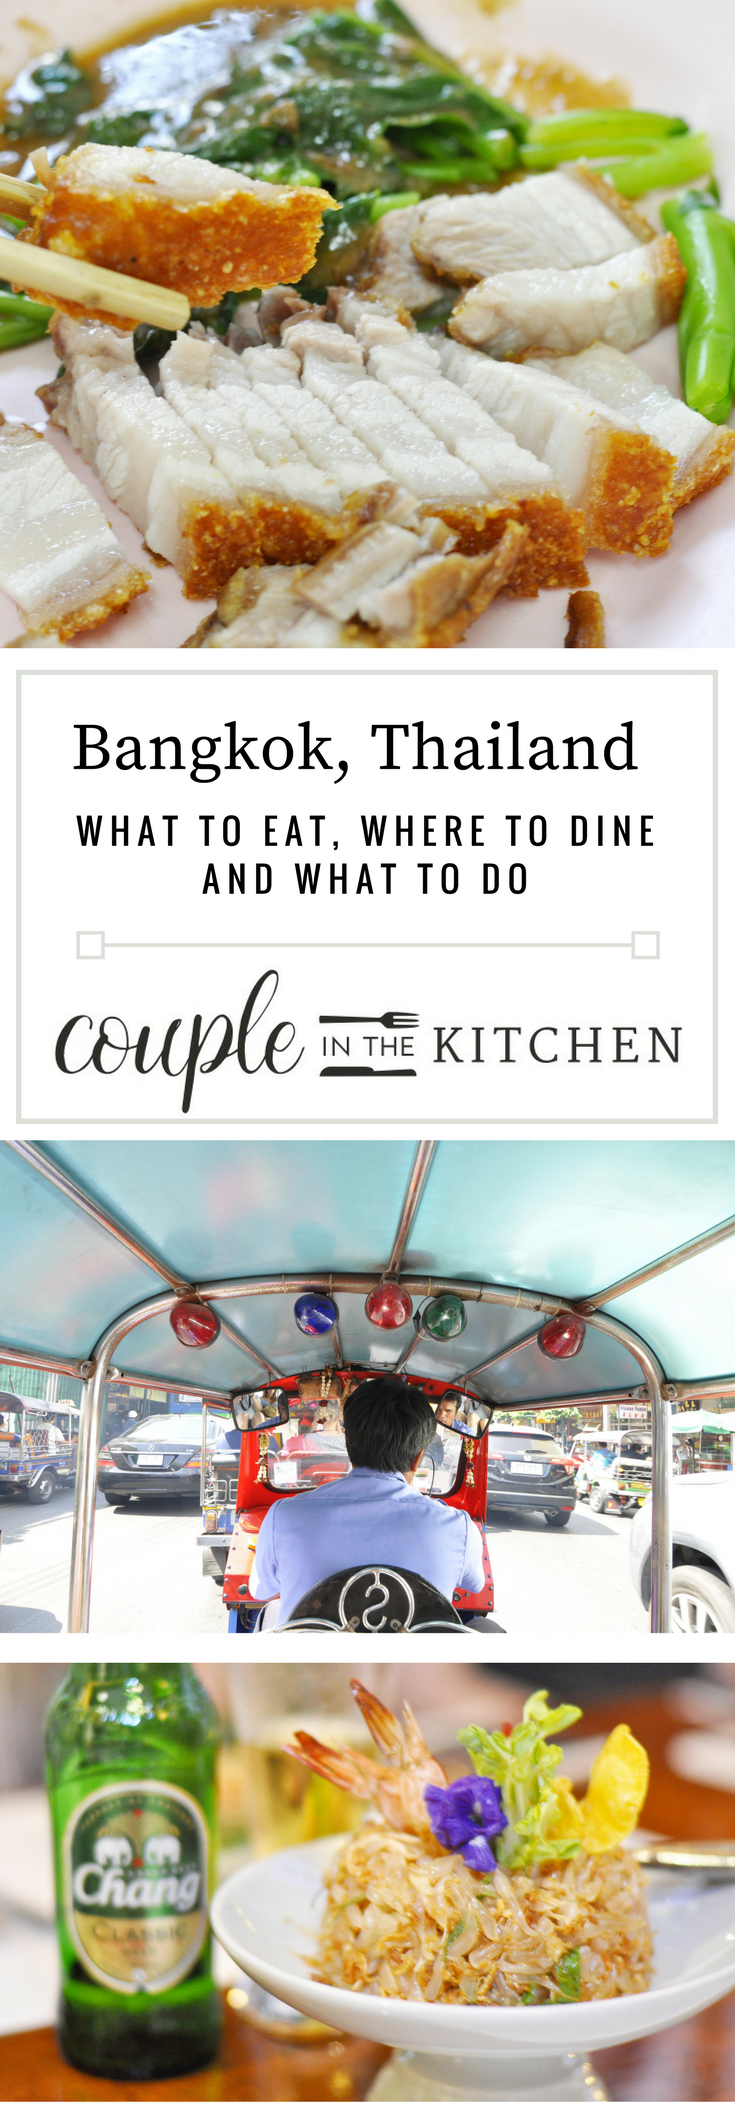 Bangkok, Thailand - A Foodie Guide to the City — Couple in the Kitchen